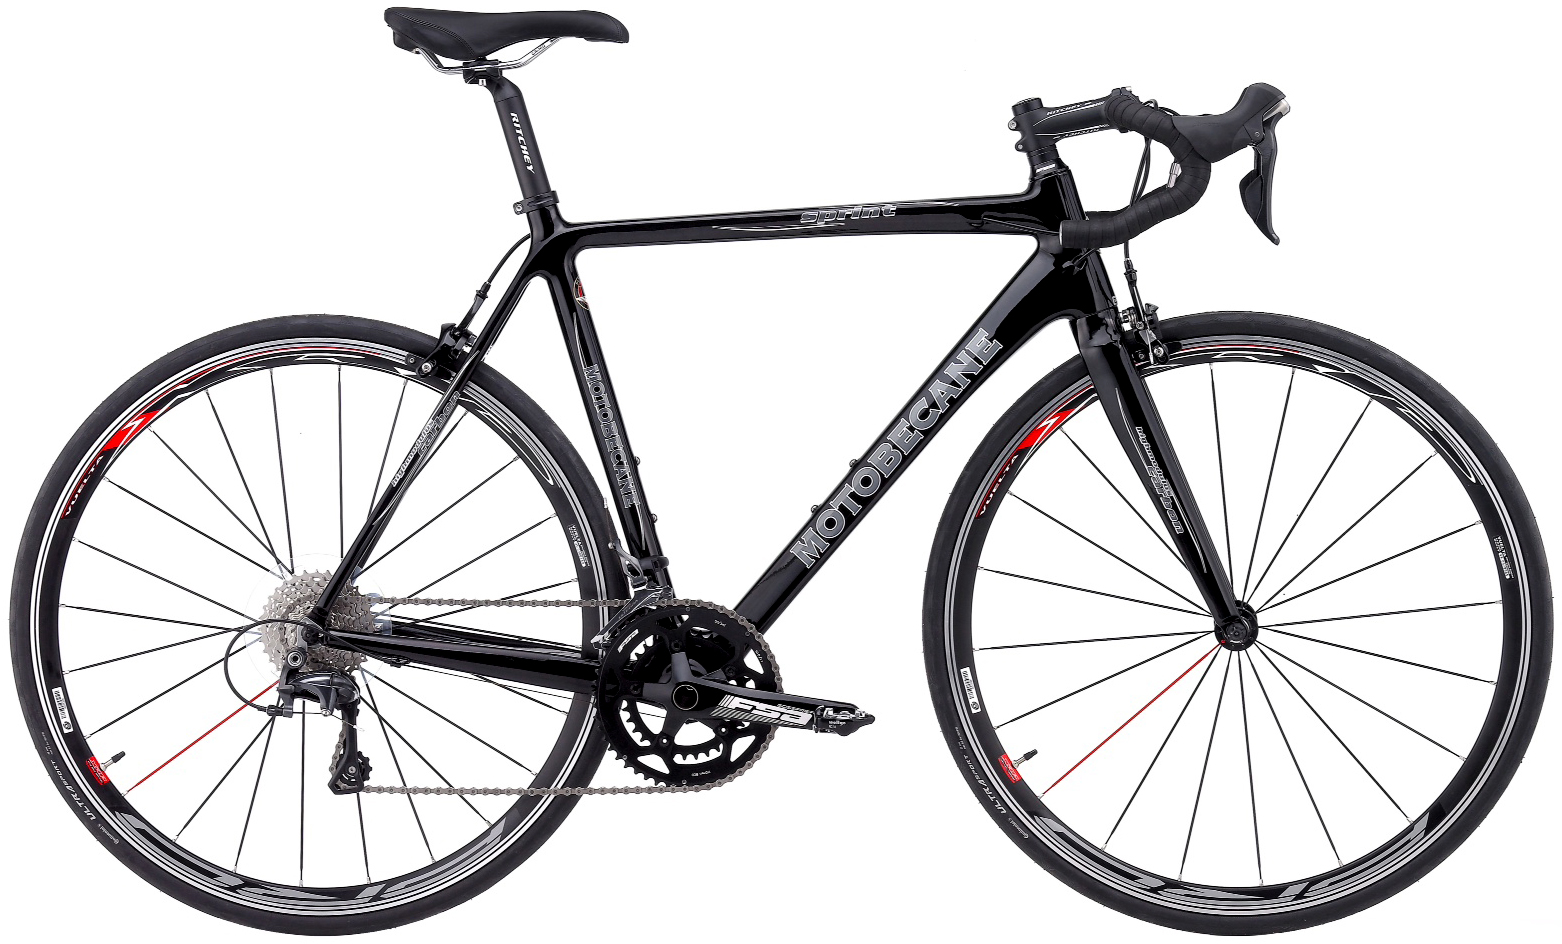 Motobecane Vent Noir Road Bike Reviews